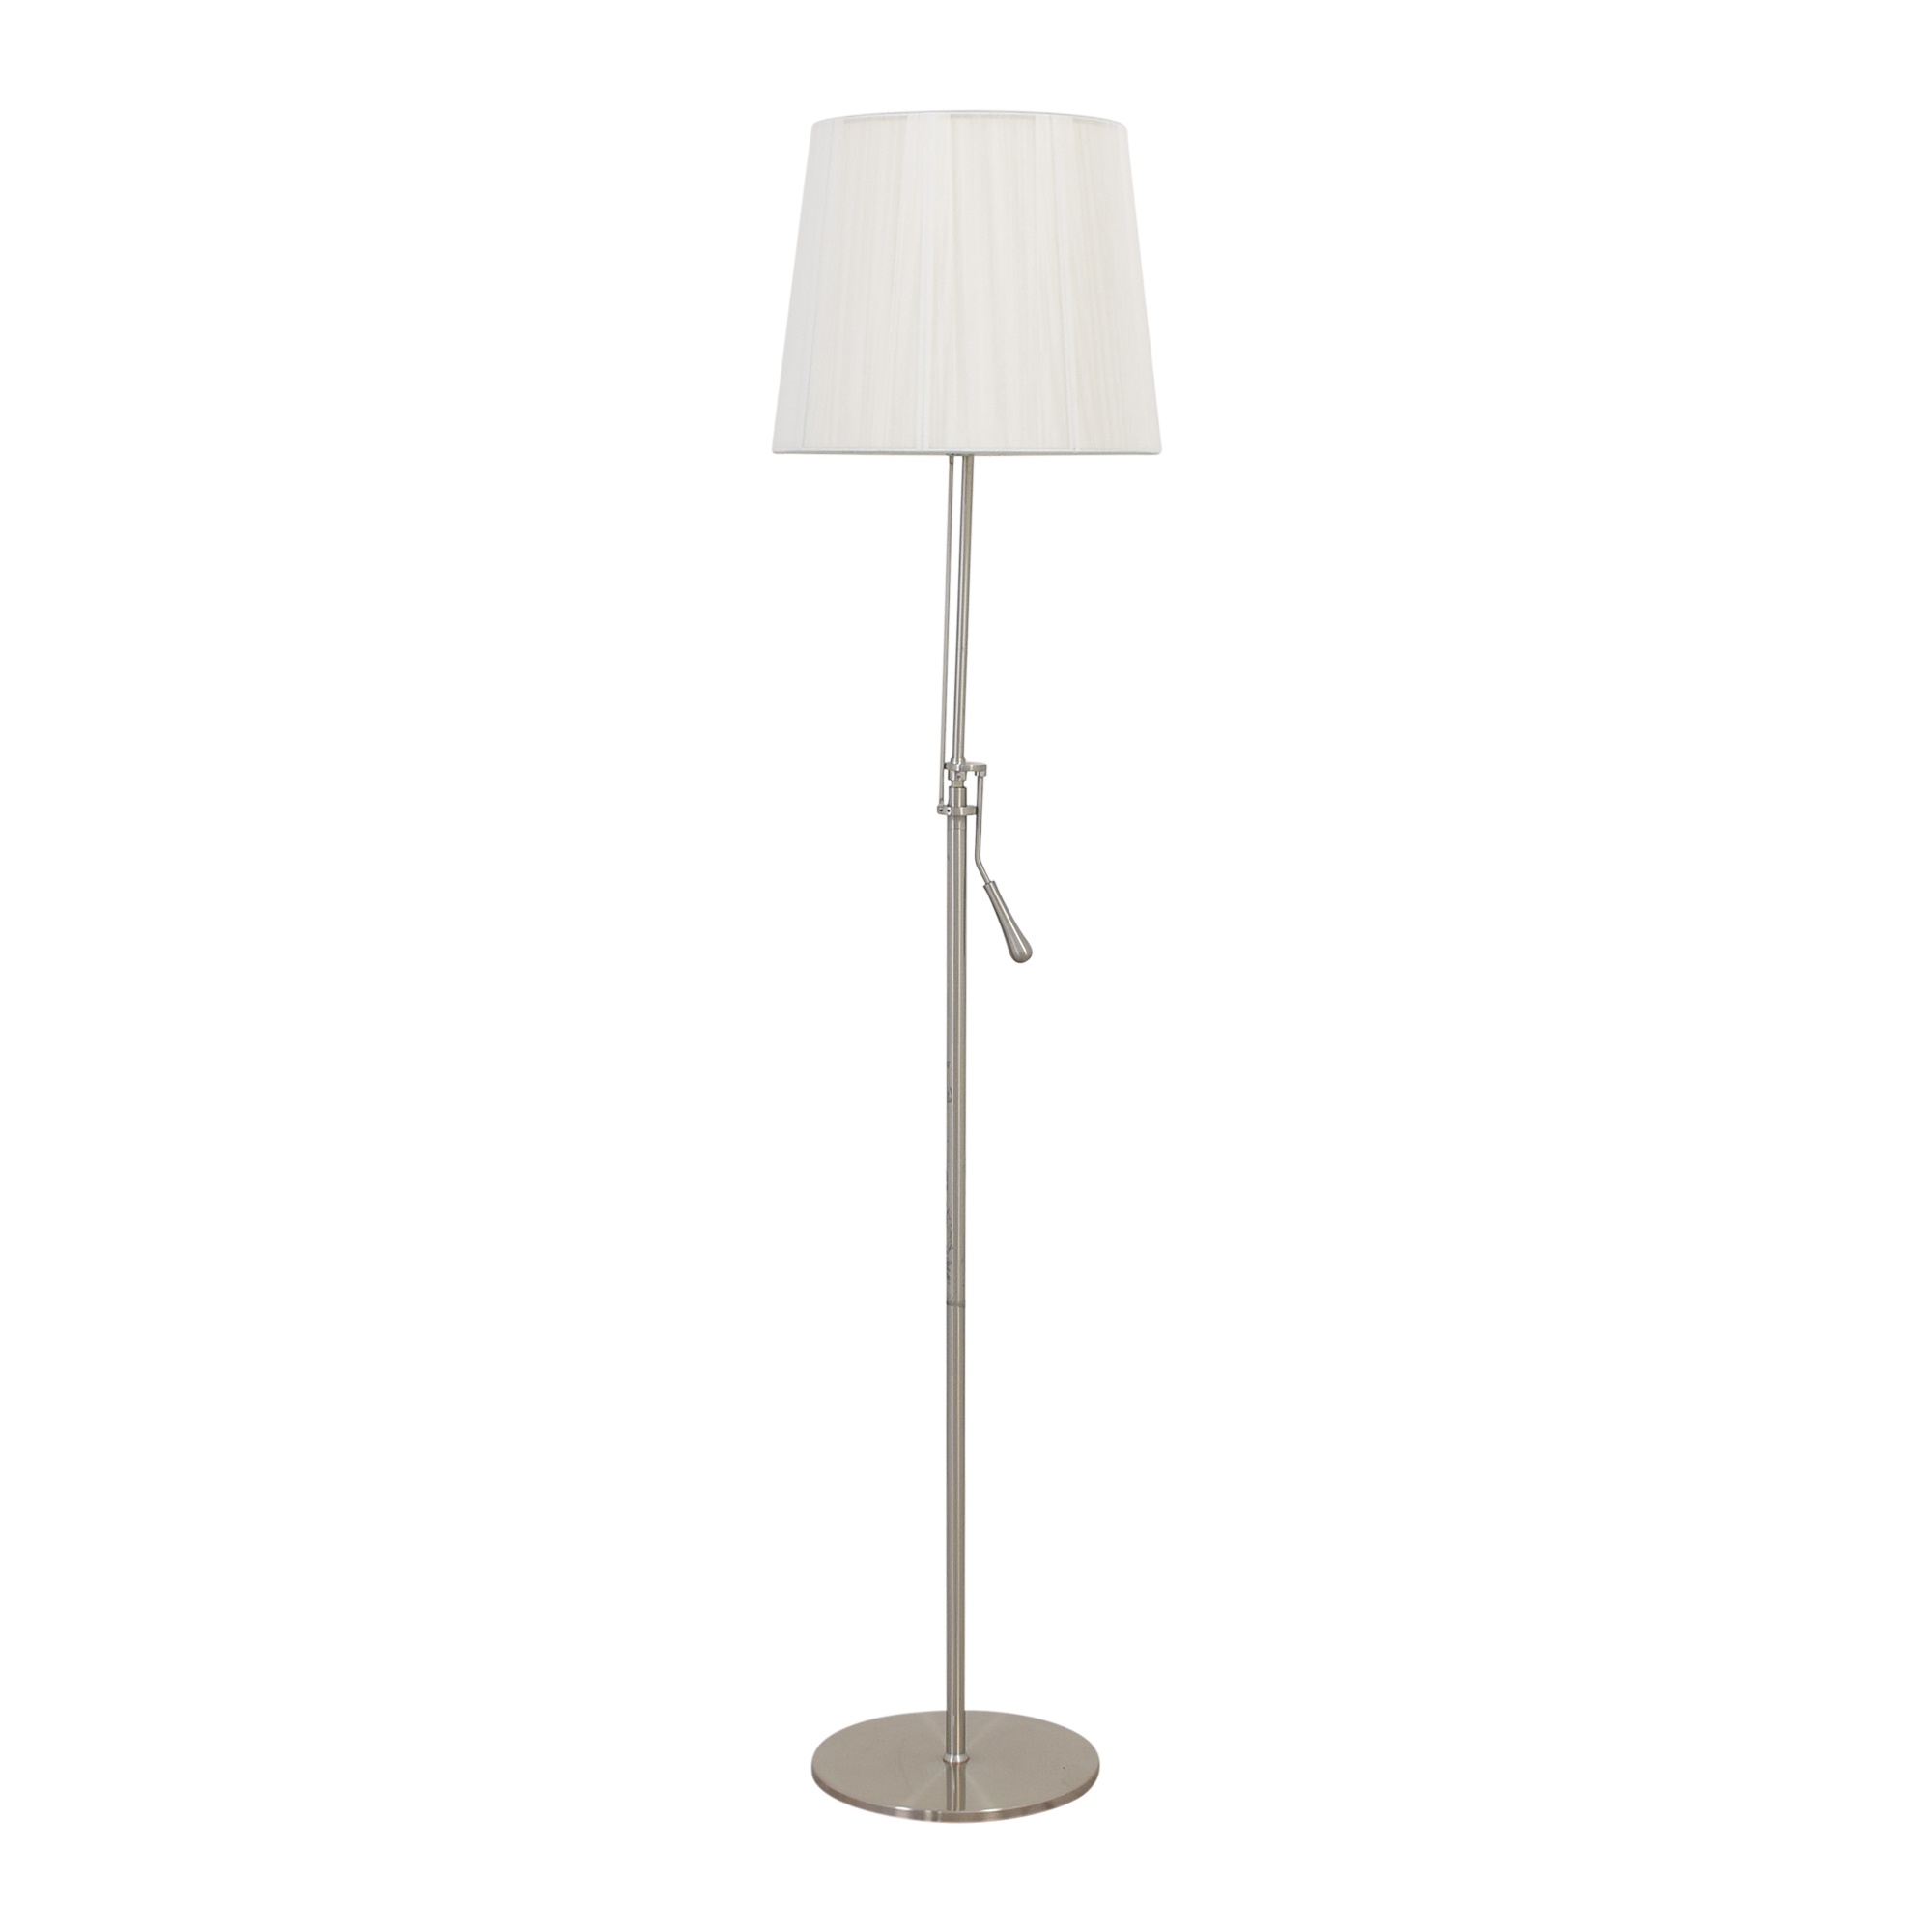 Gracious Home Gracious Home Swing Arm Floor Lamp used